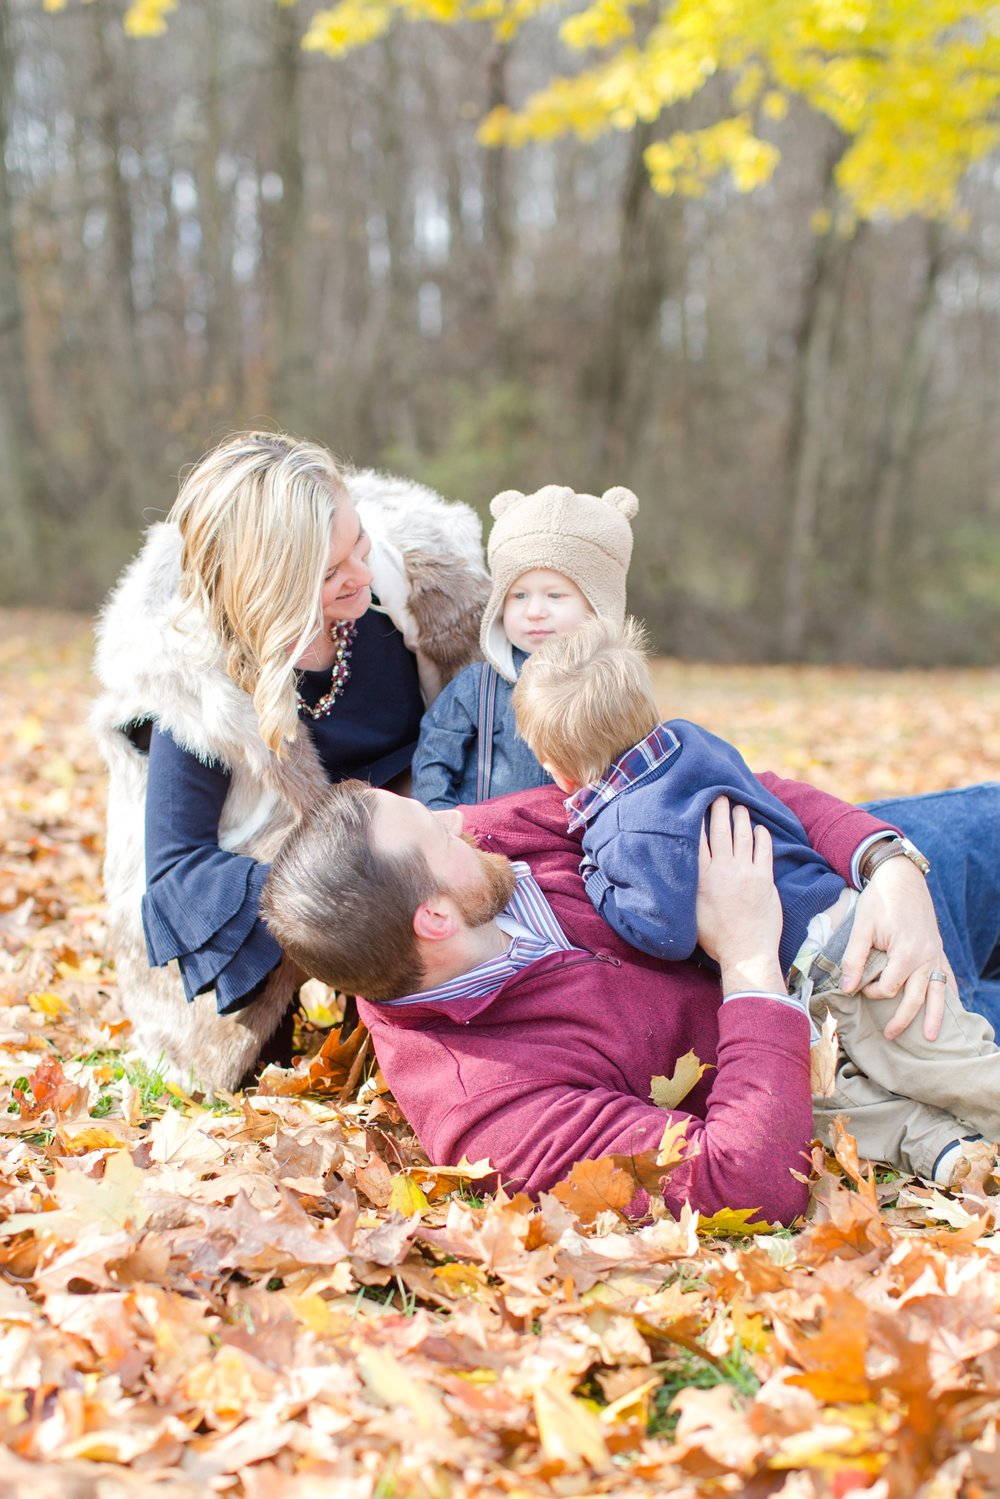 Andrews Family 2017-164_oregon-ridge-park-baltimore-maryland-family-photography-anna-grace-photography-photo.jpg